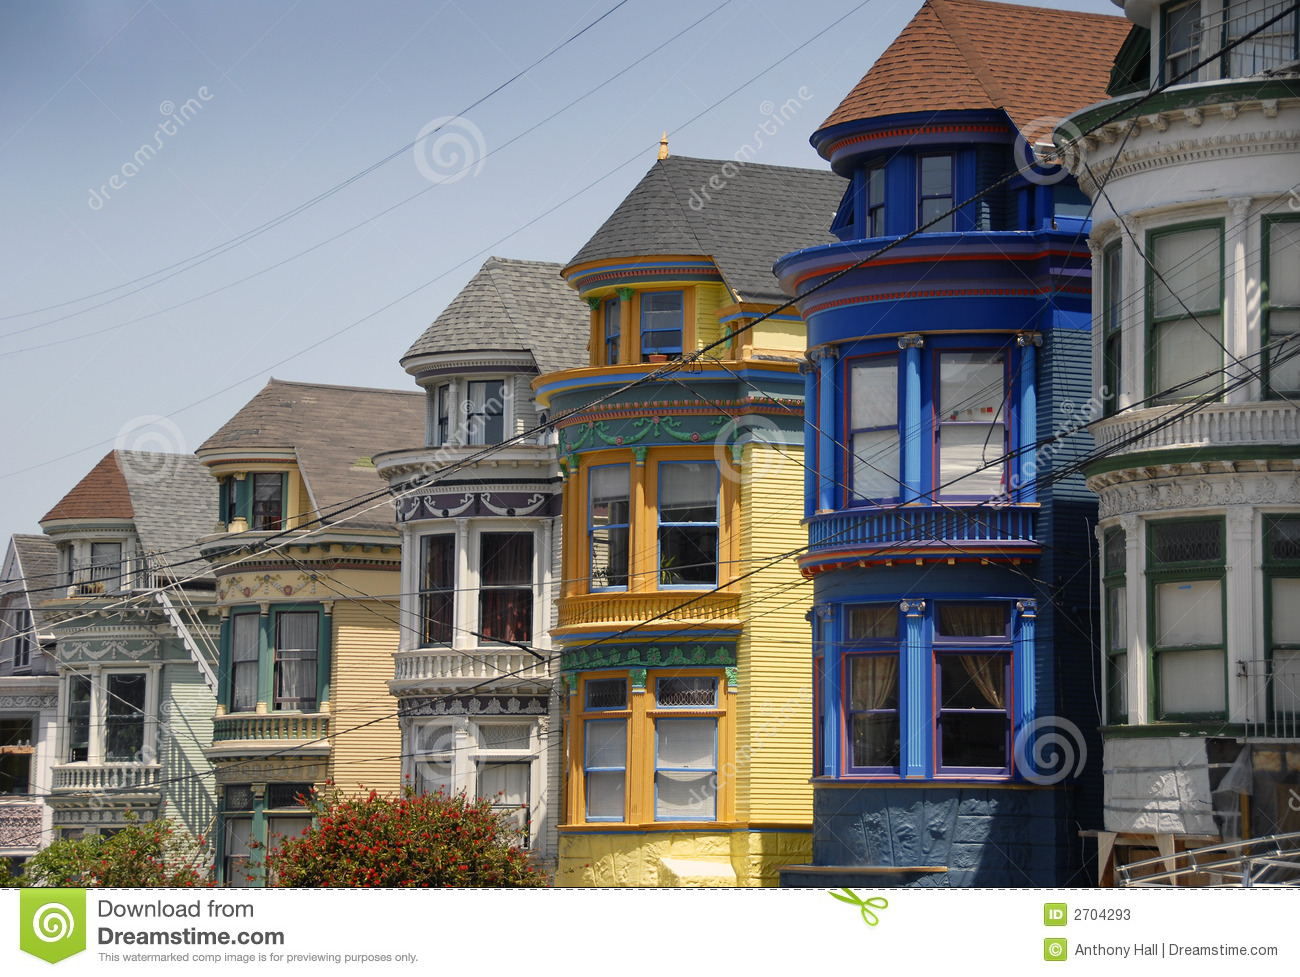 San francisco victorian houses stock image image of for San francisco victorian houses